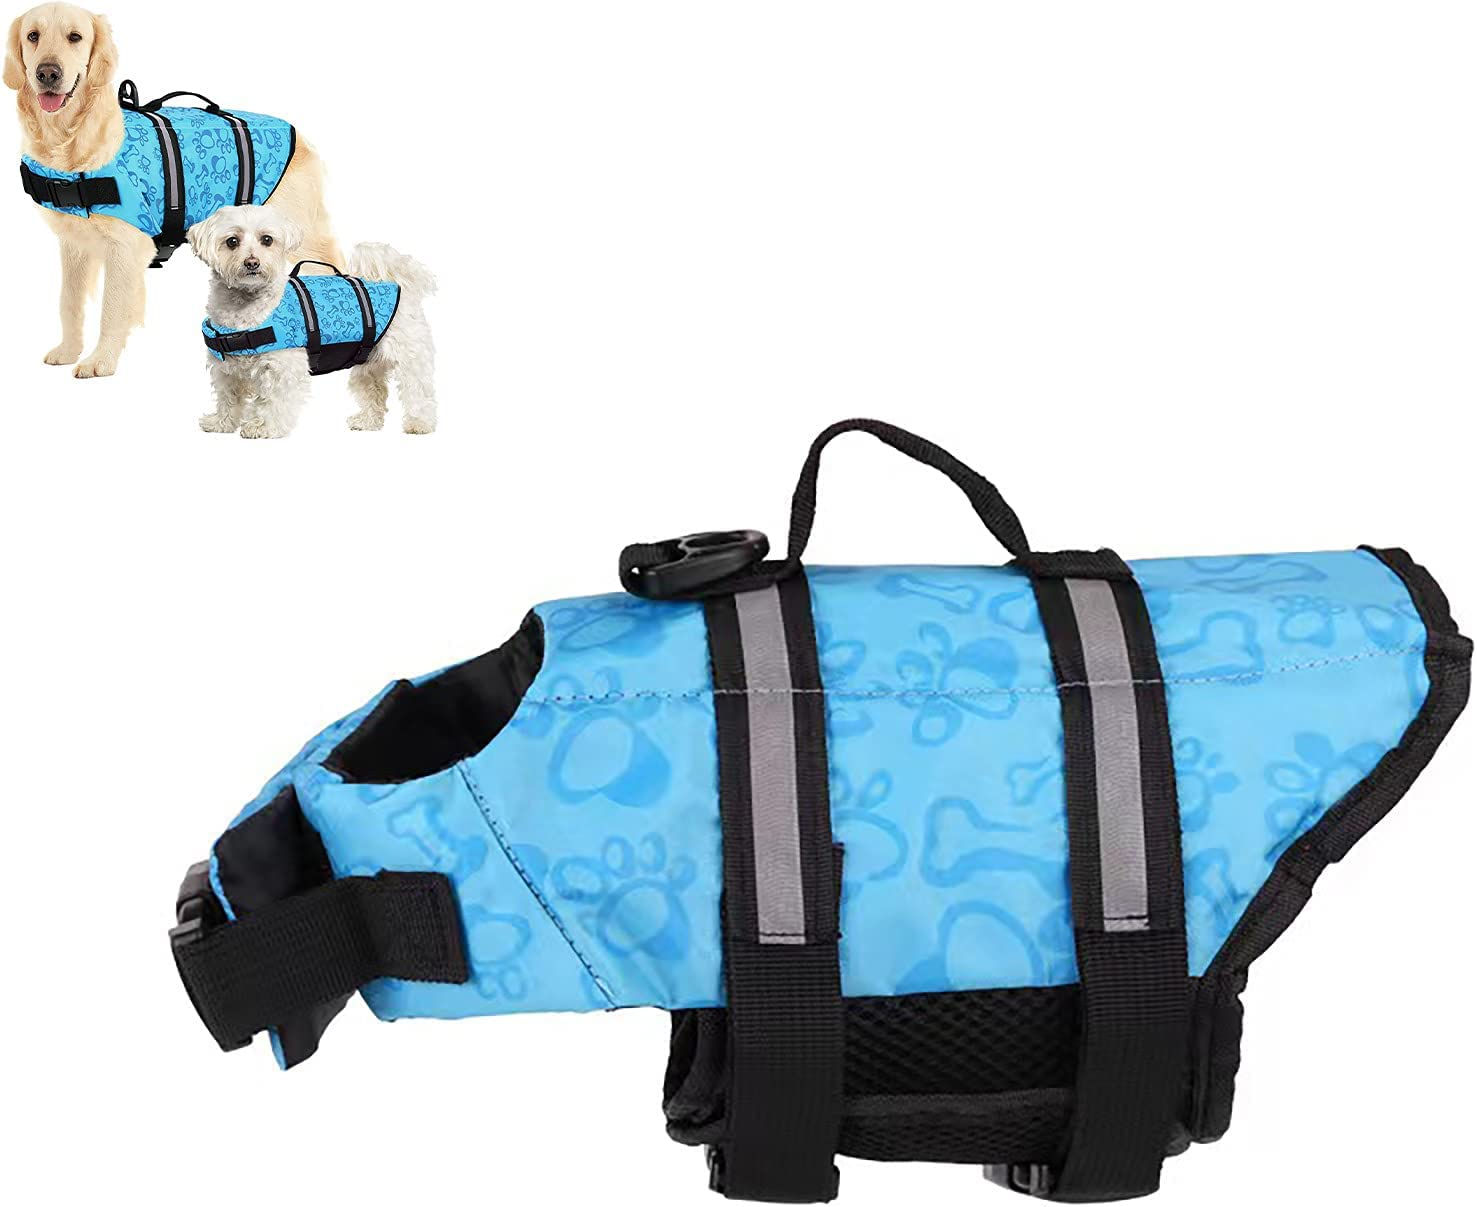 Littlefall Dog Life Special price ! Super beauty product restock quality top! Jacket with Reflective Adjustabl Stripes and